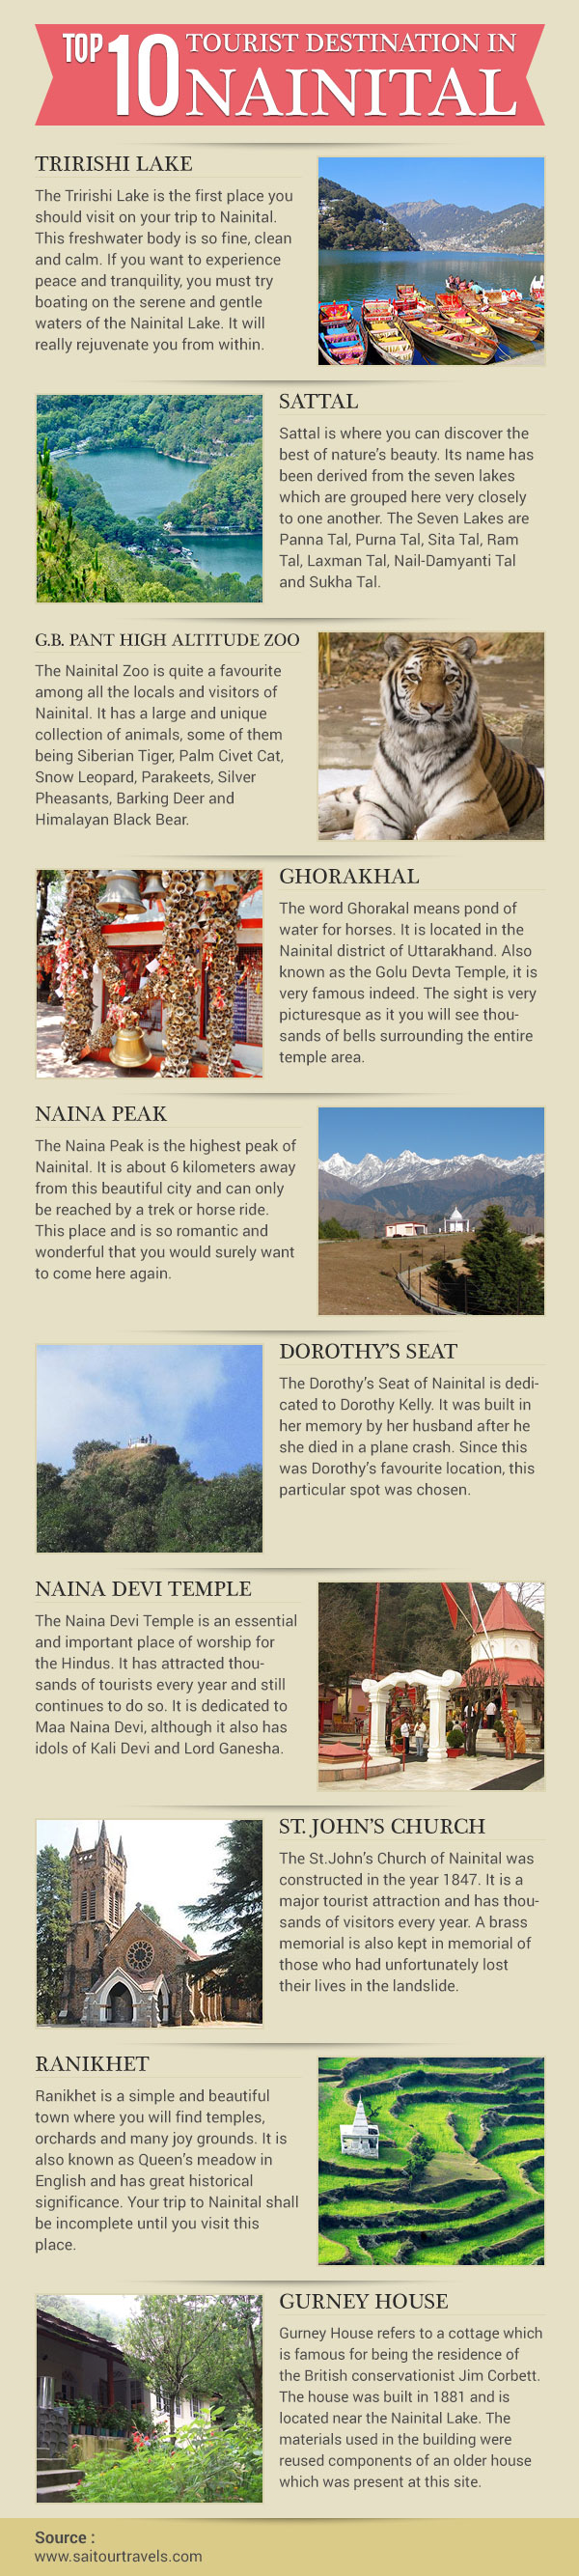 Top 10 tourist destinations in Nainital